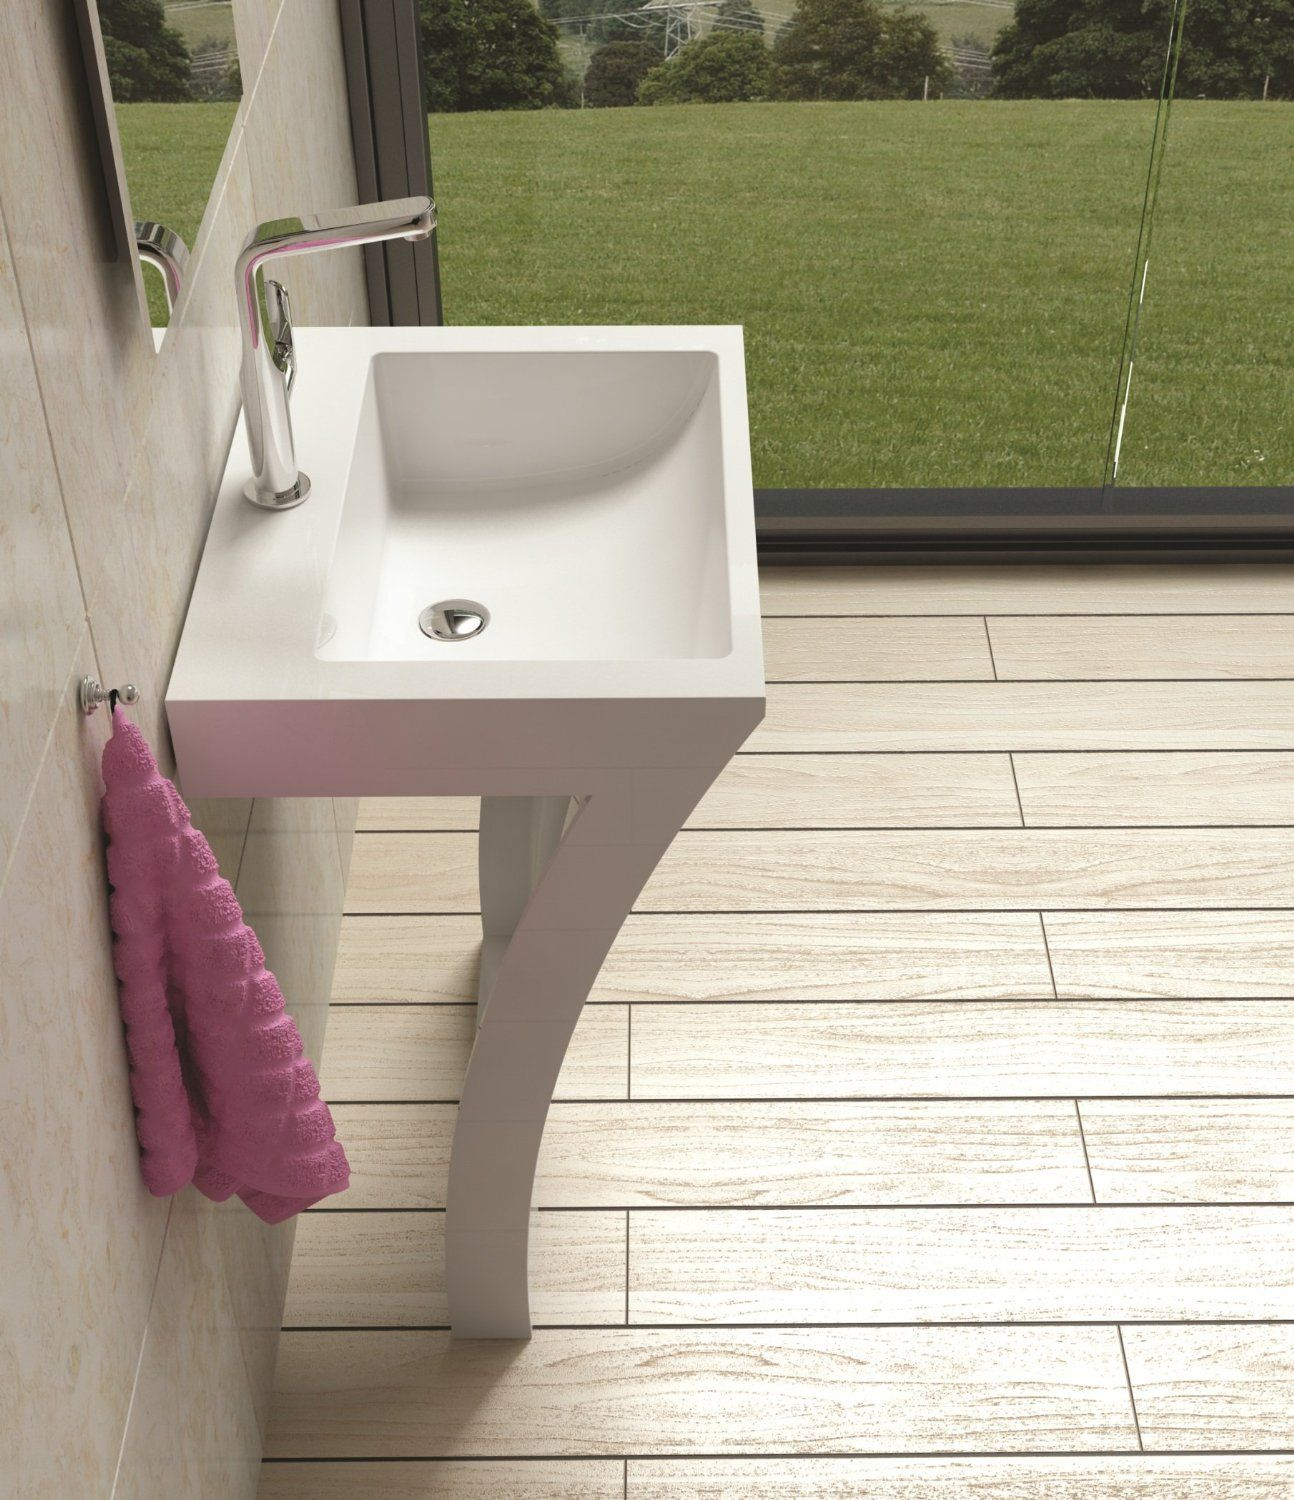 kooler incredible sinks pedestal on photo me large width org sink outstanding bathroom for with inch ideas